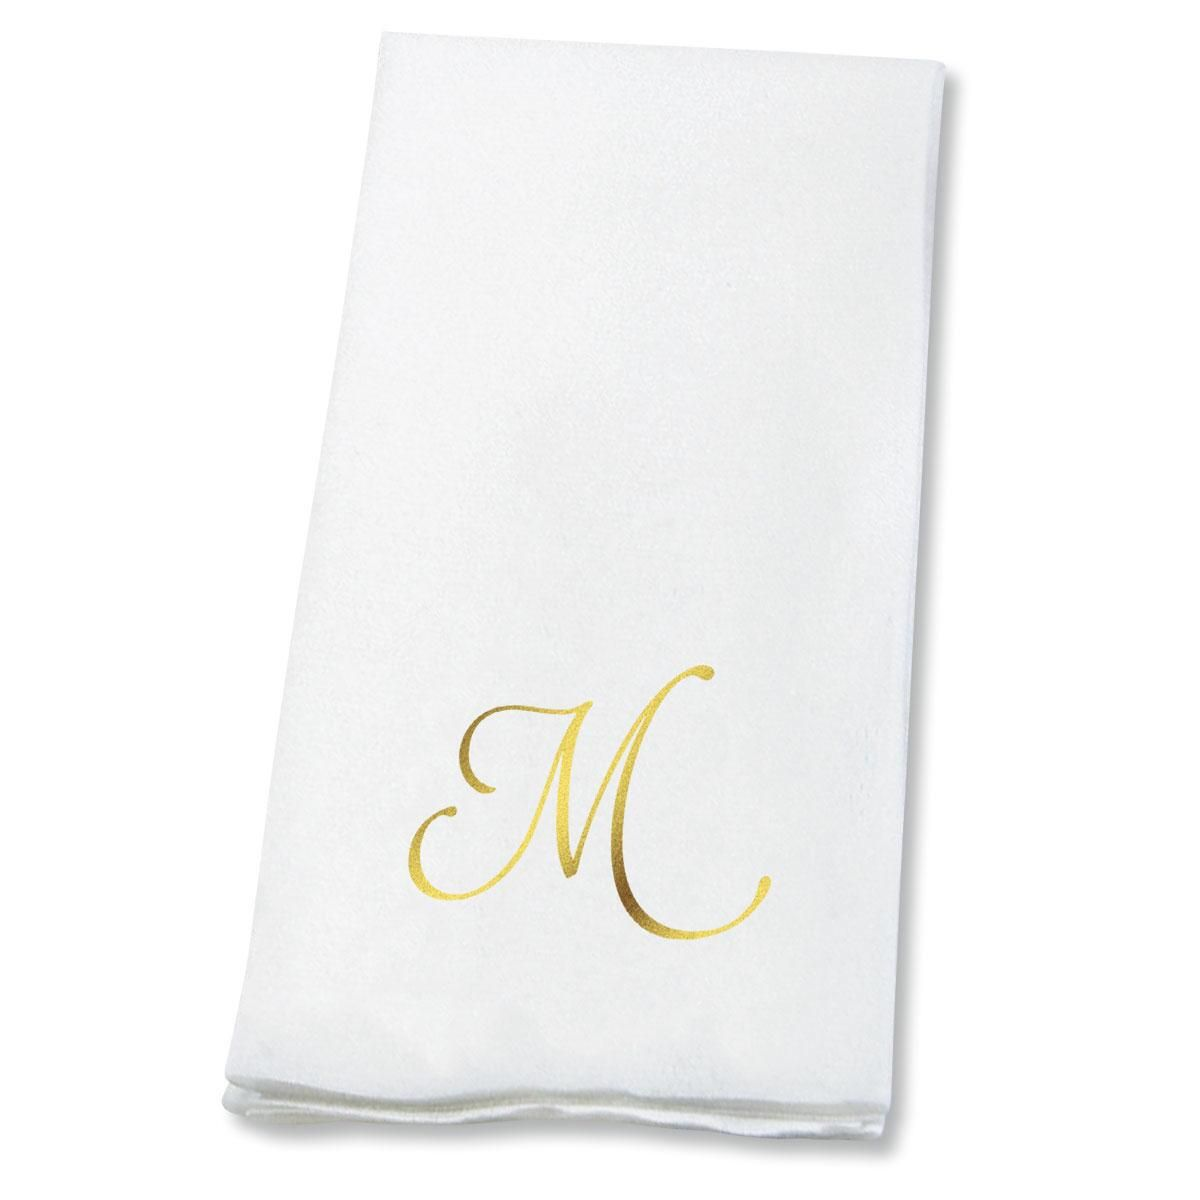 Script Initial Disposable Hand Towels